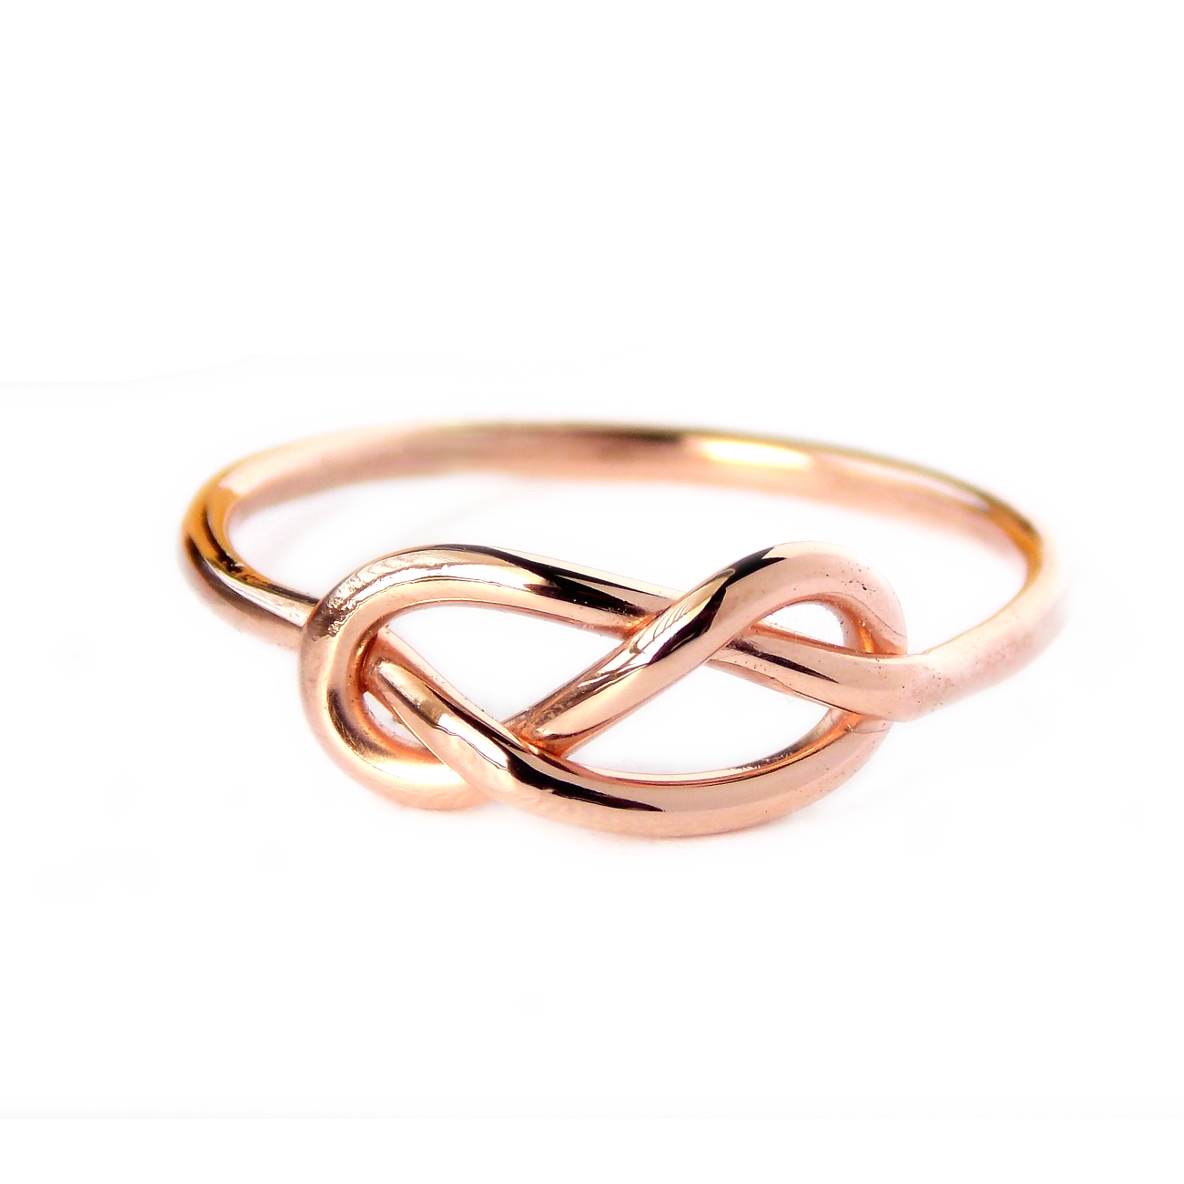 Rose Gold-filled Infinity Knot Ring   Infinity knot ring, Knot rings ...